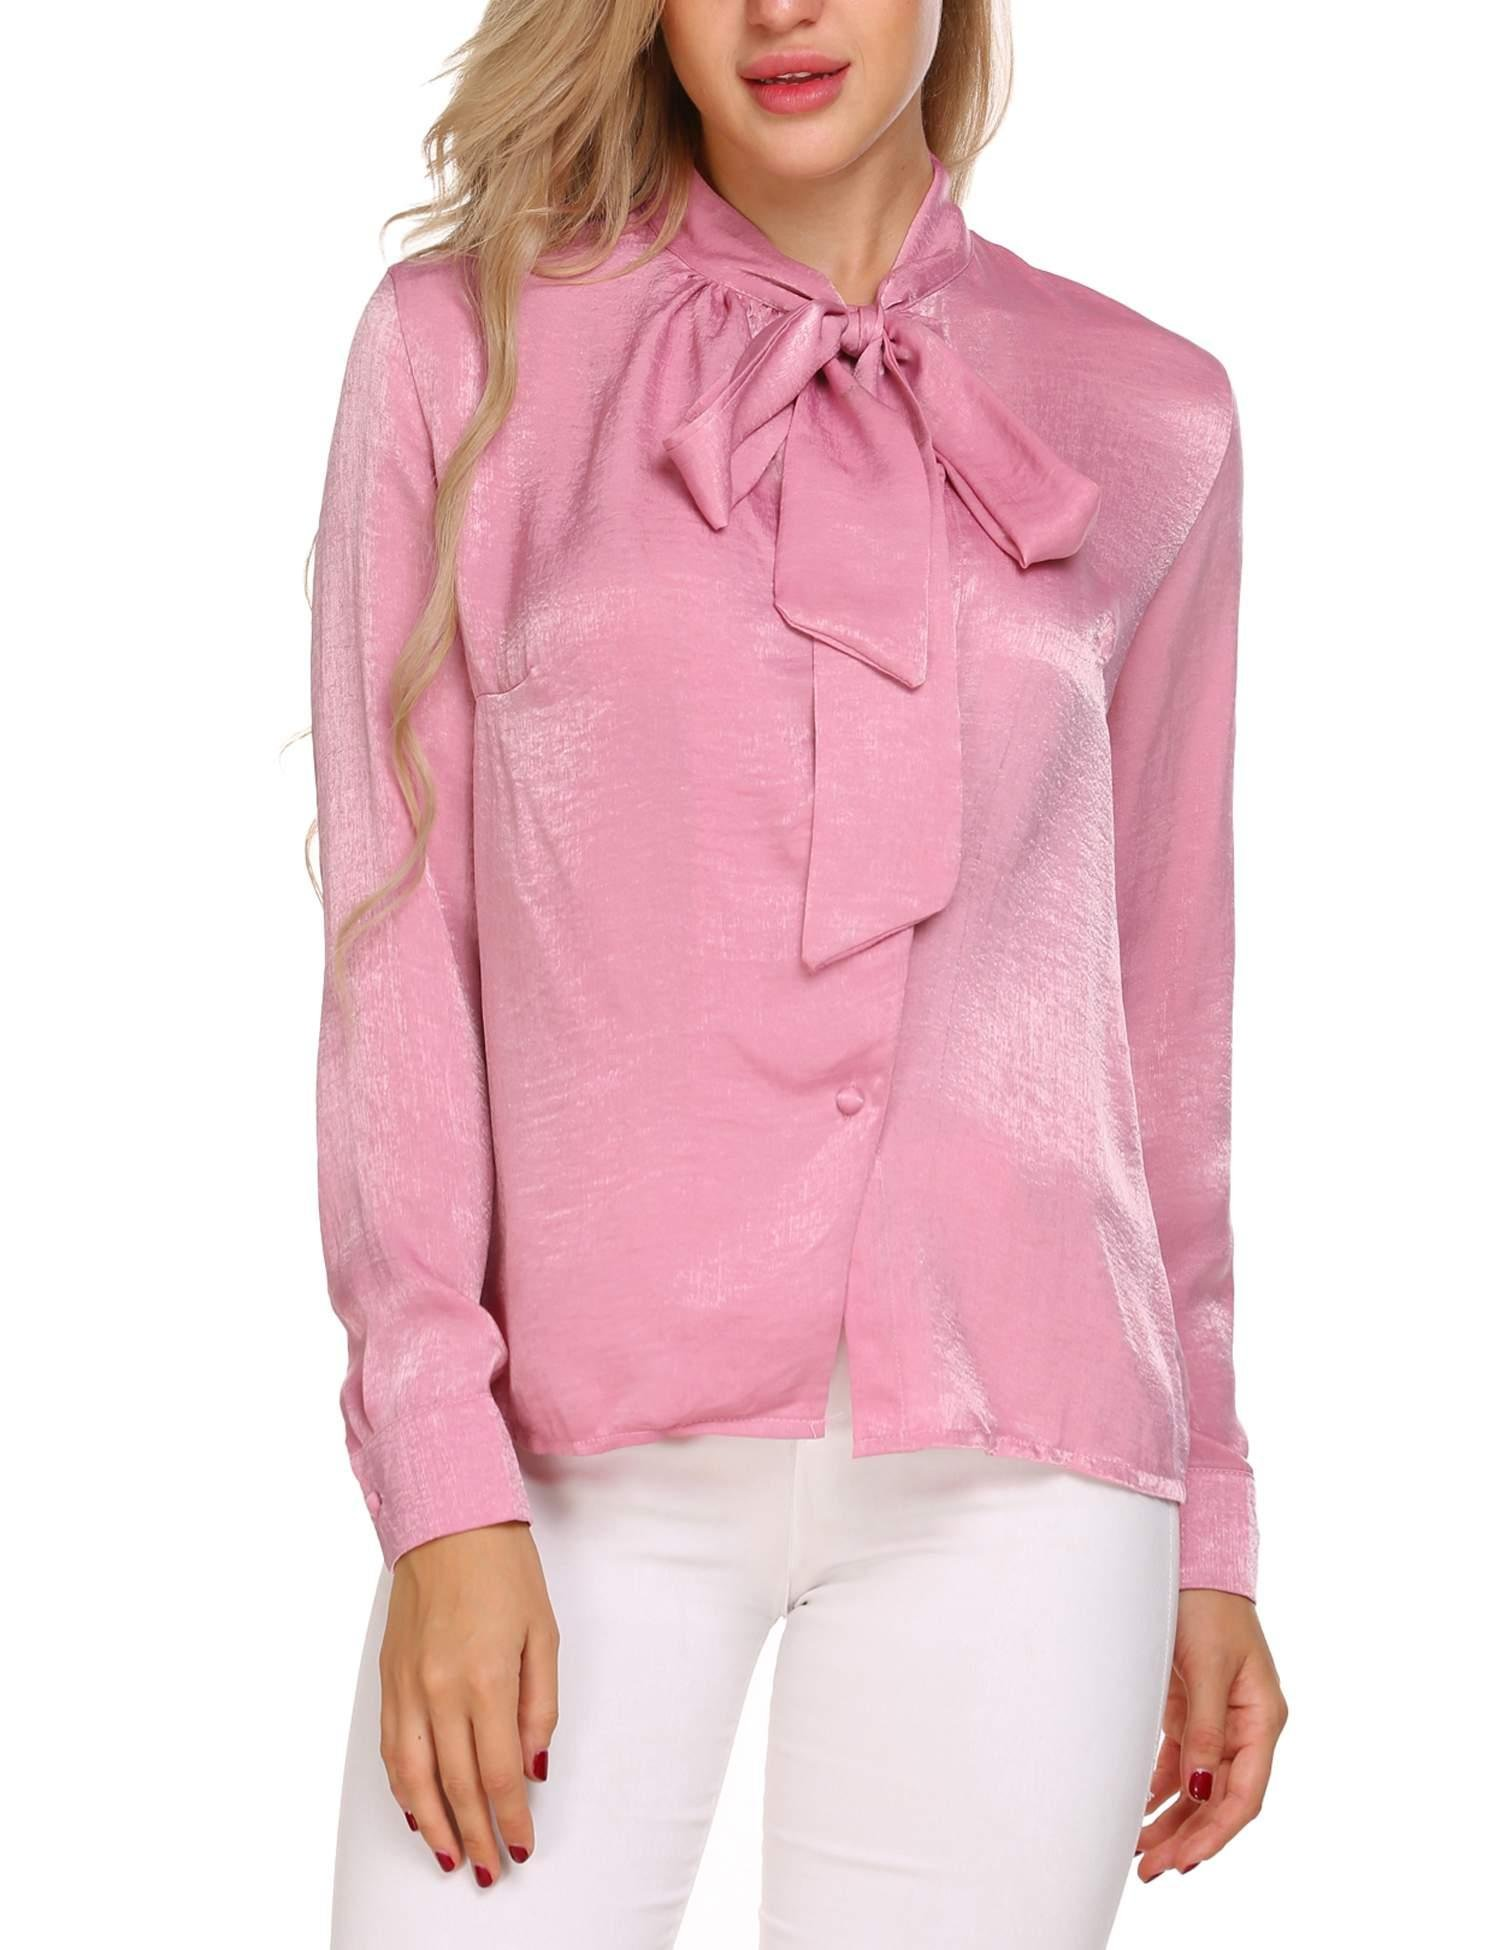 SoTeer Women's Bow Neck Long Sleeve Casual Top Slim Blouse Pink